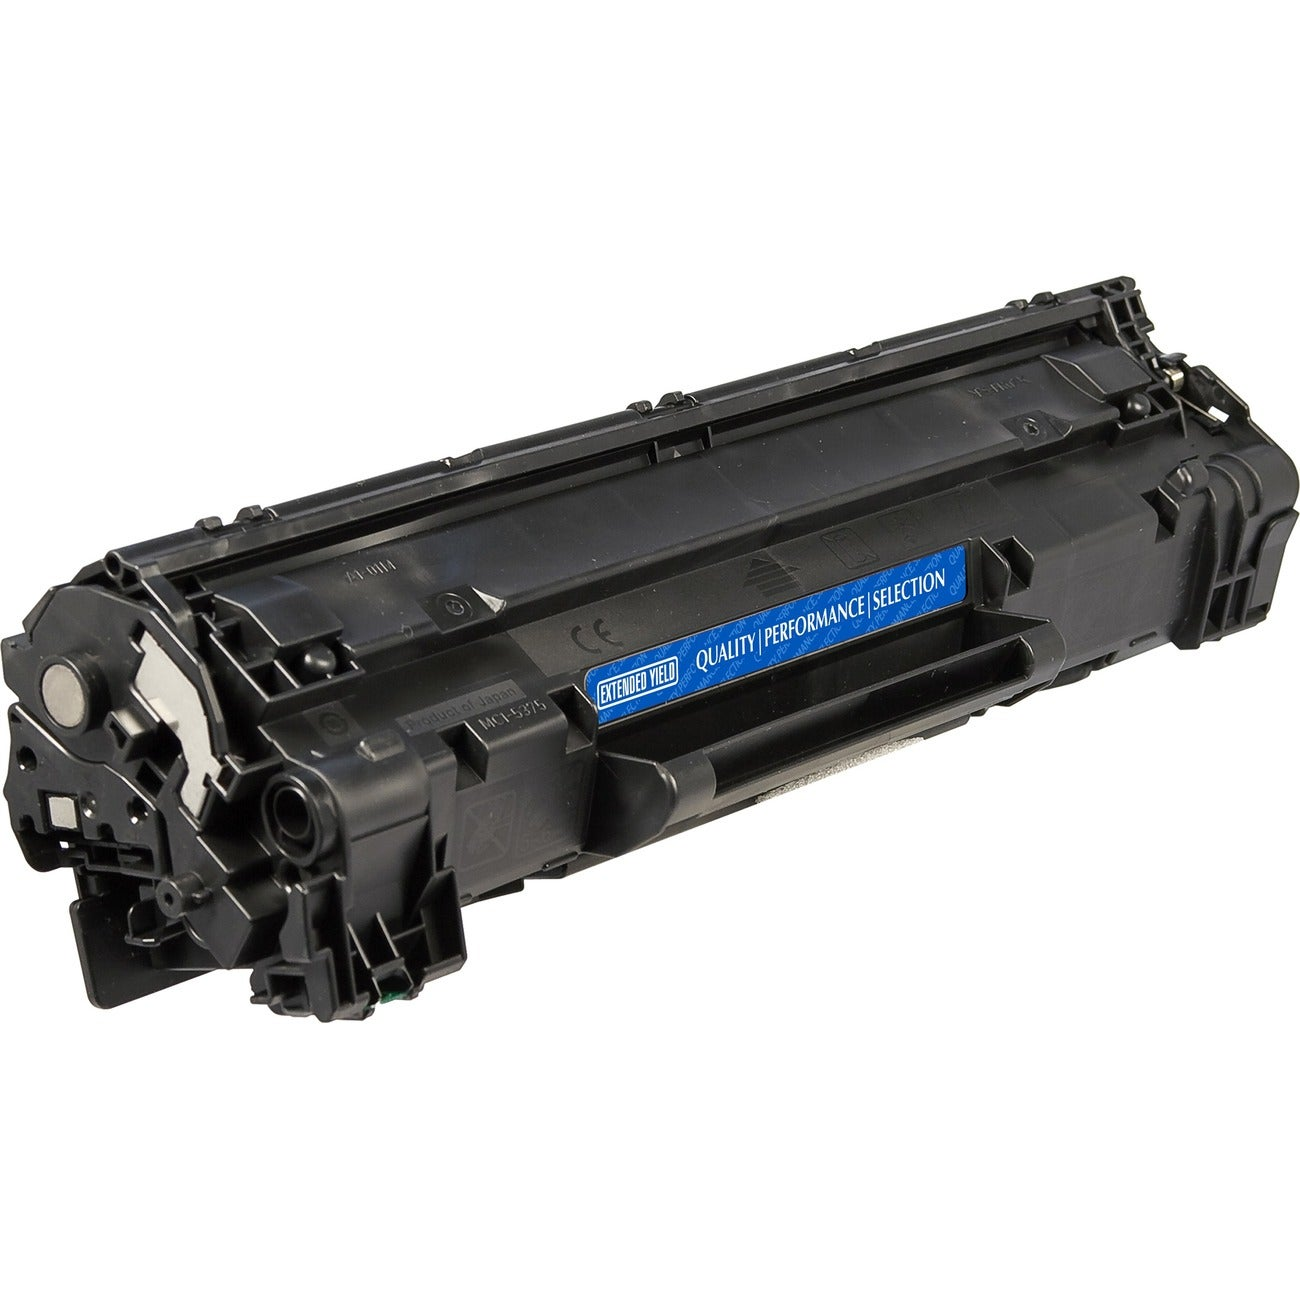 V7 Toner Cartridge - Remanufactured for HP (CE285A) - Black - Thumbnail 0